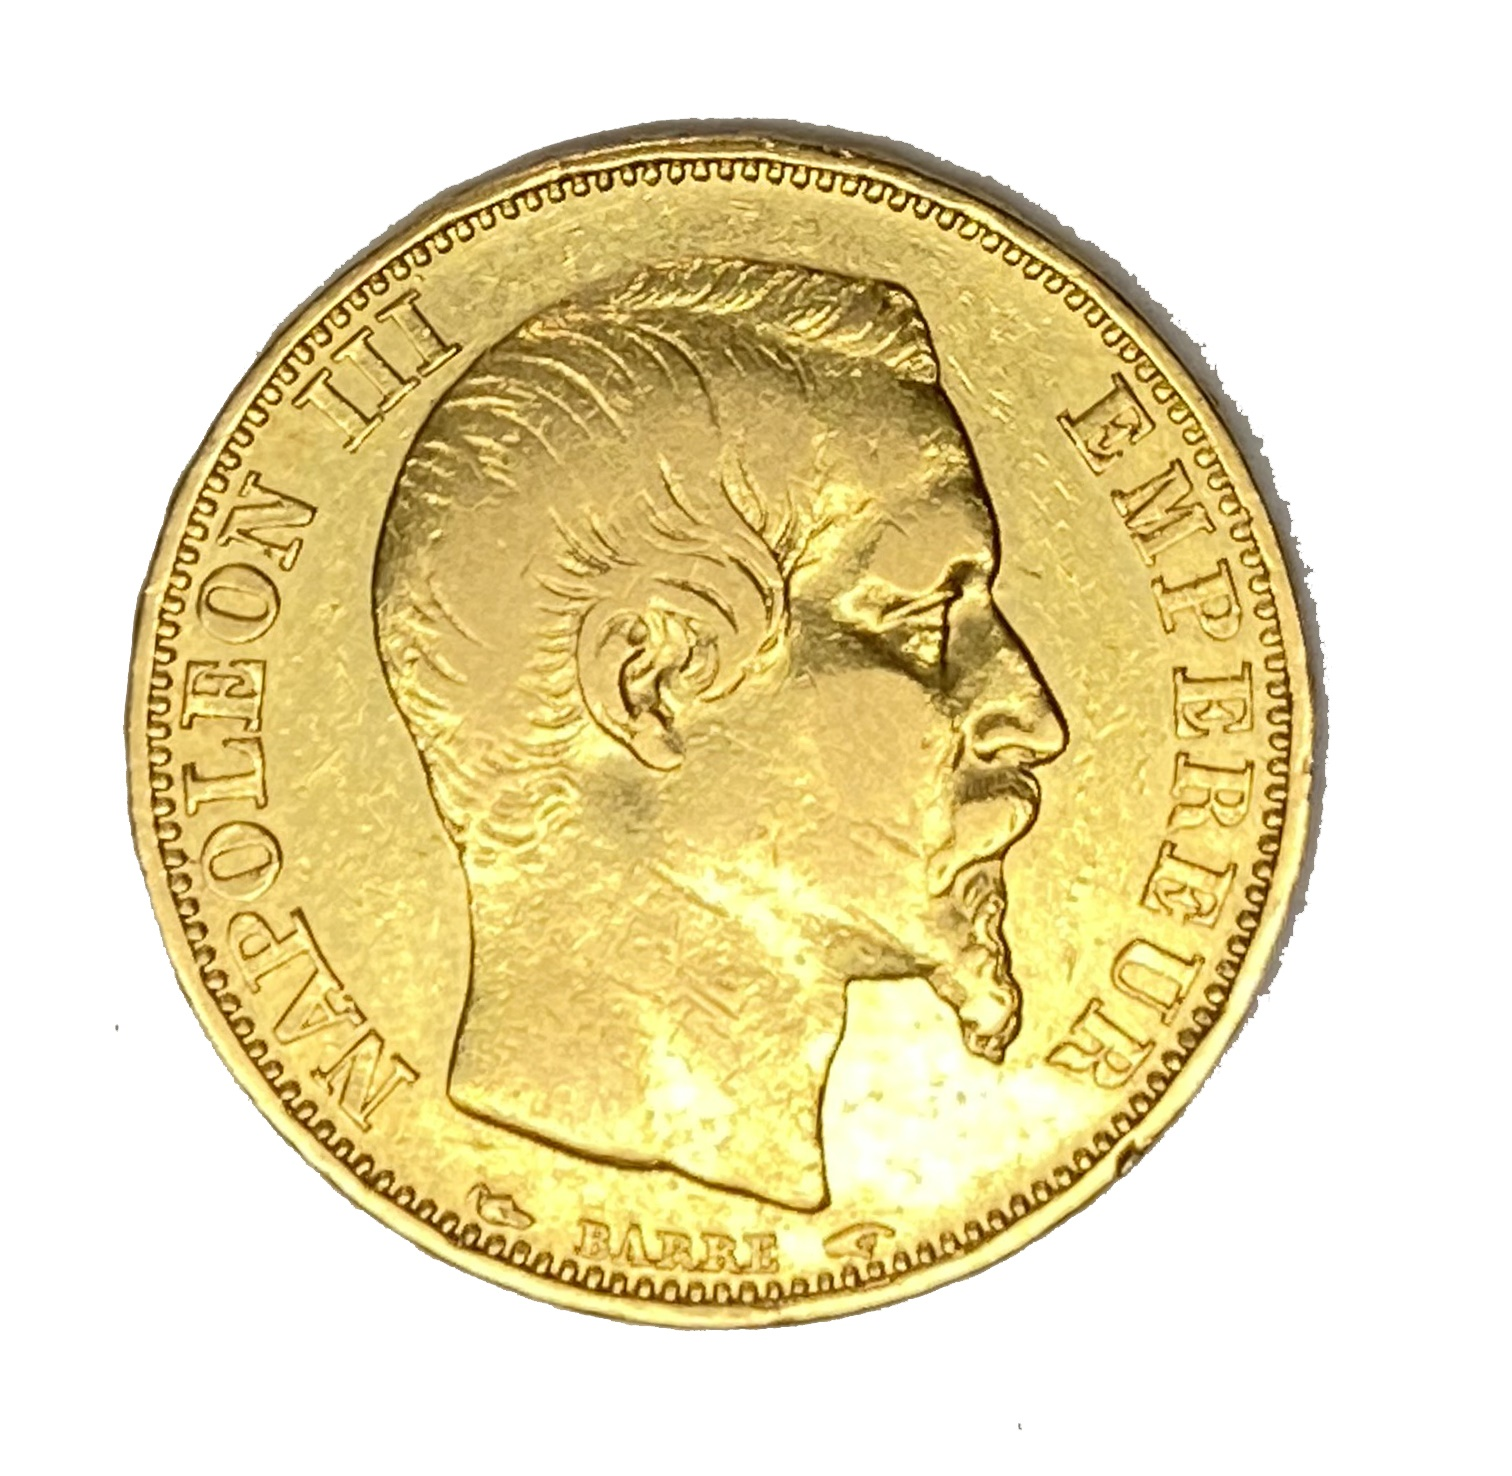 French Empire 20 Franc gold coin, Napoleon III, 1853